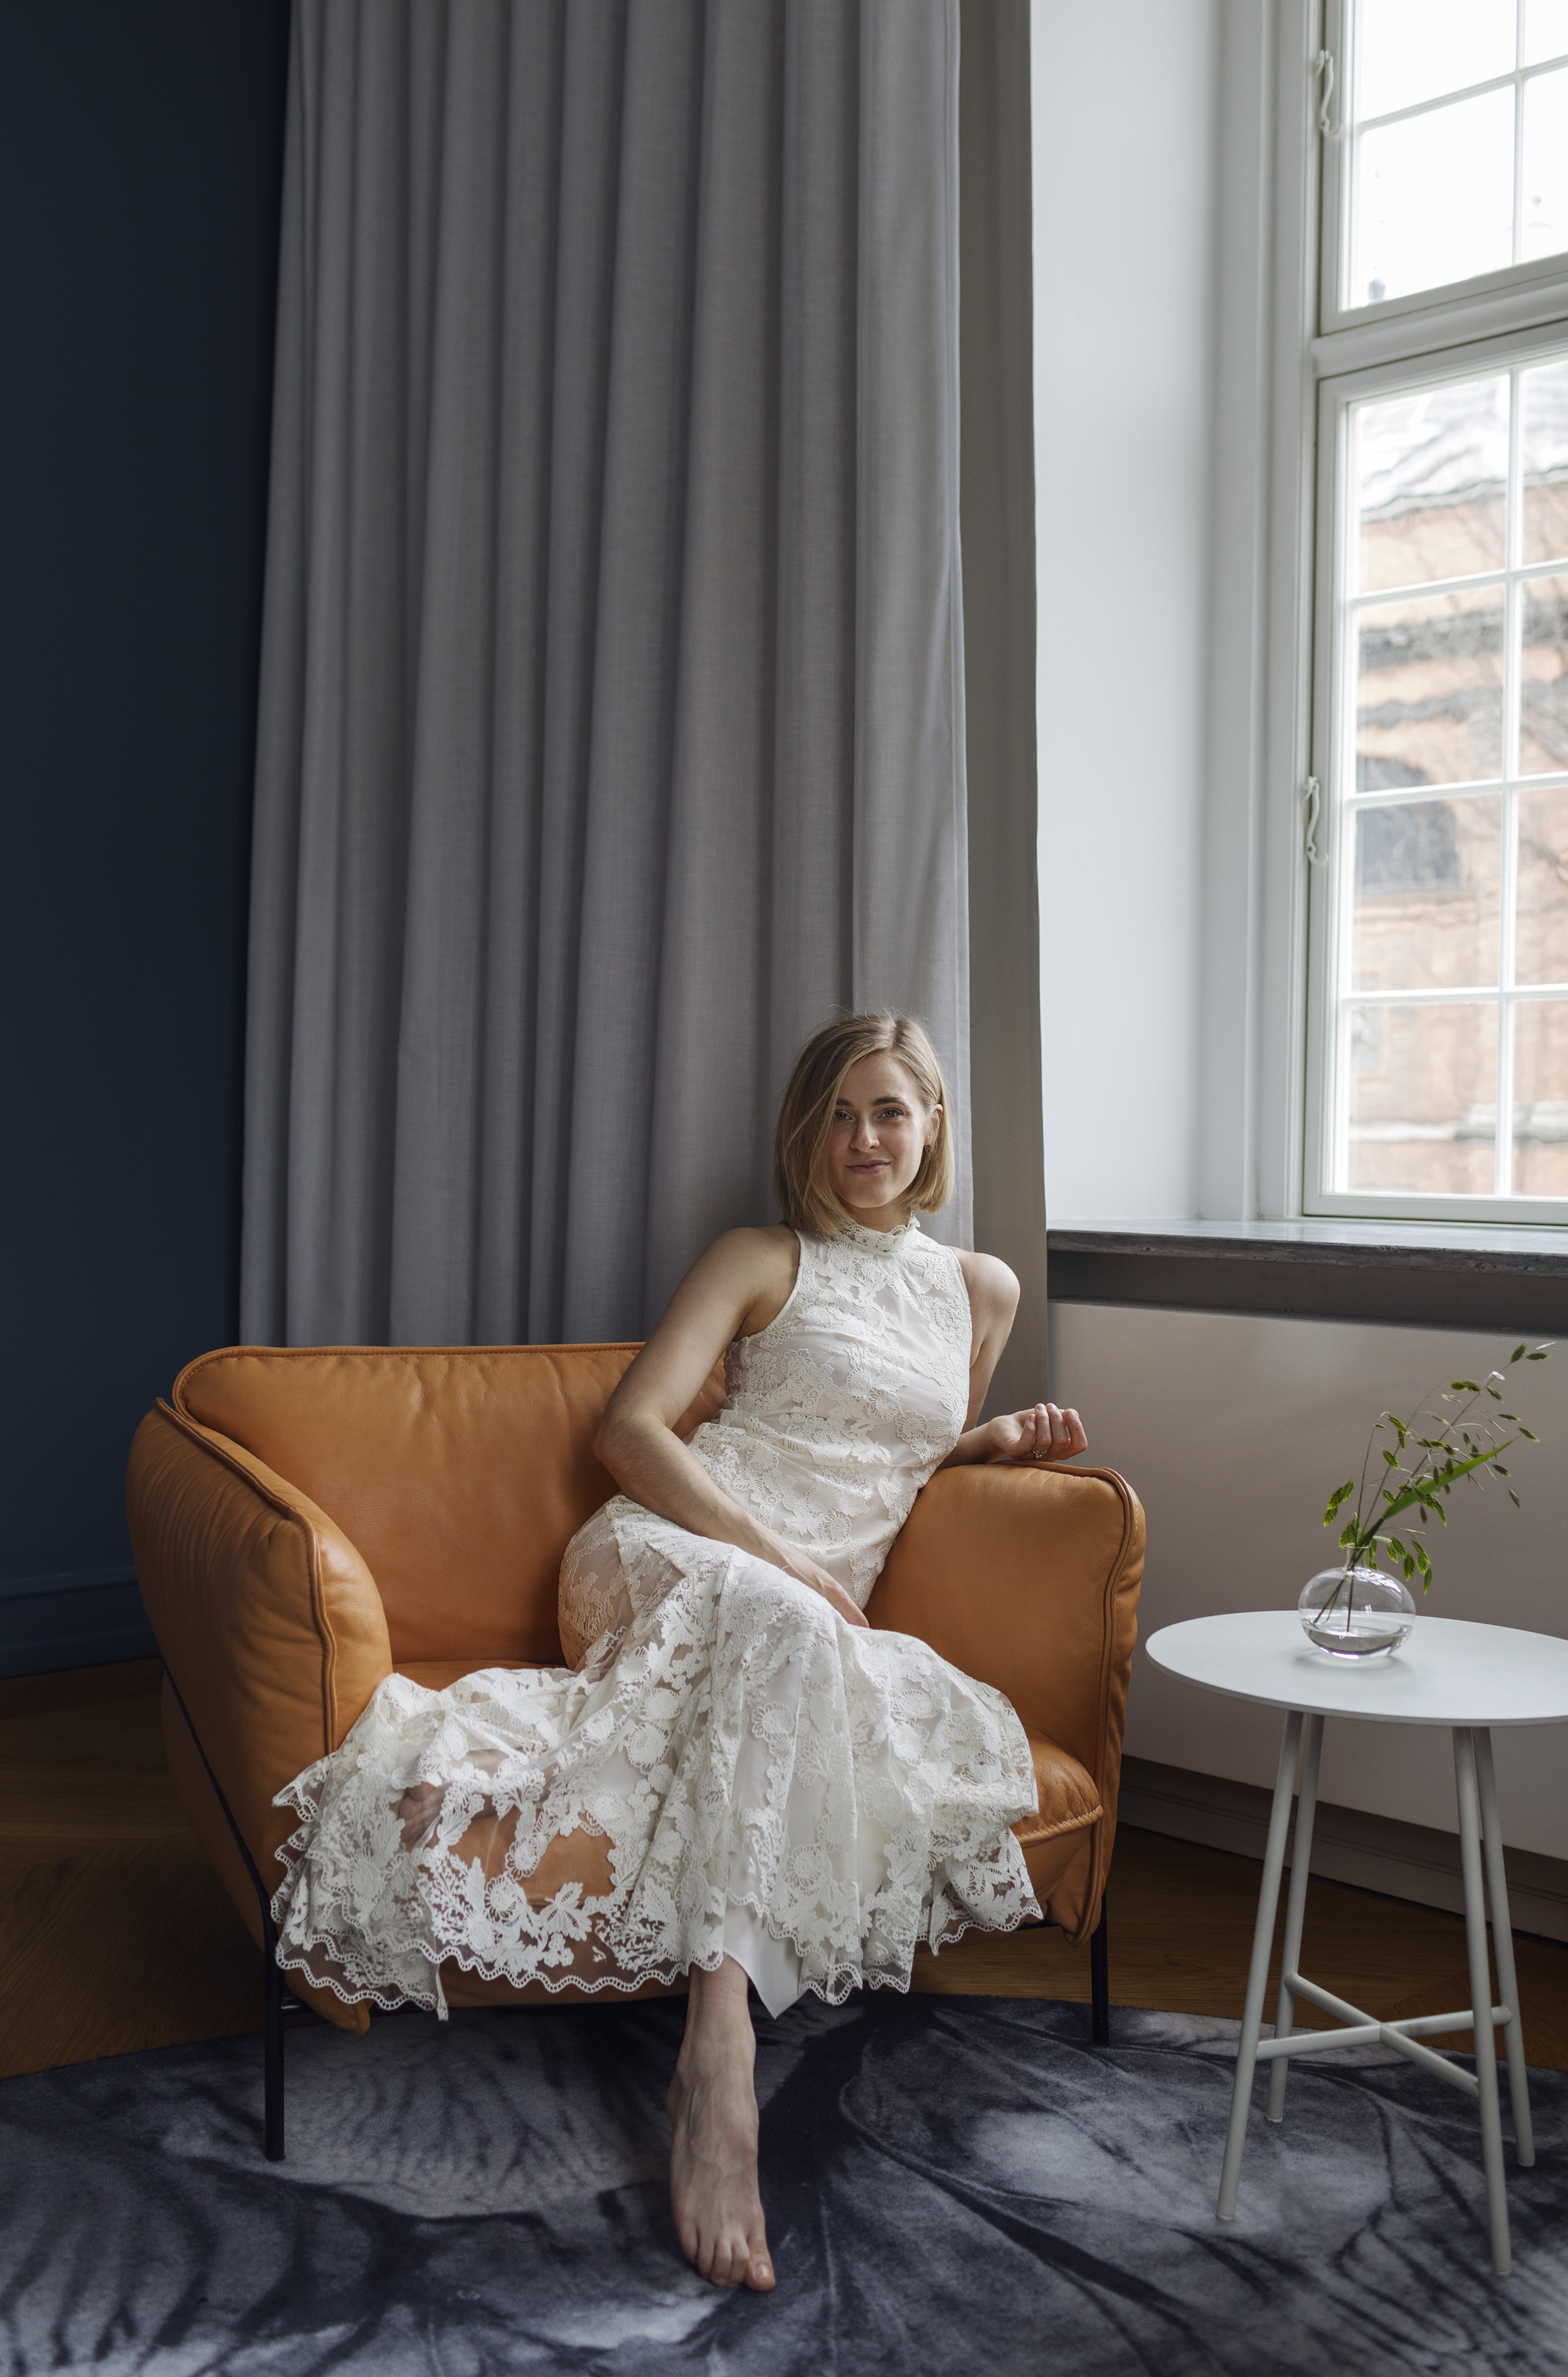 Rockpaperdresses, Cathrine Widunok Wichmand, H&M Conscious Exclusive 2018, Fotograf Alona Vibe